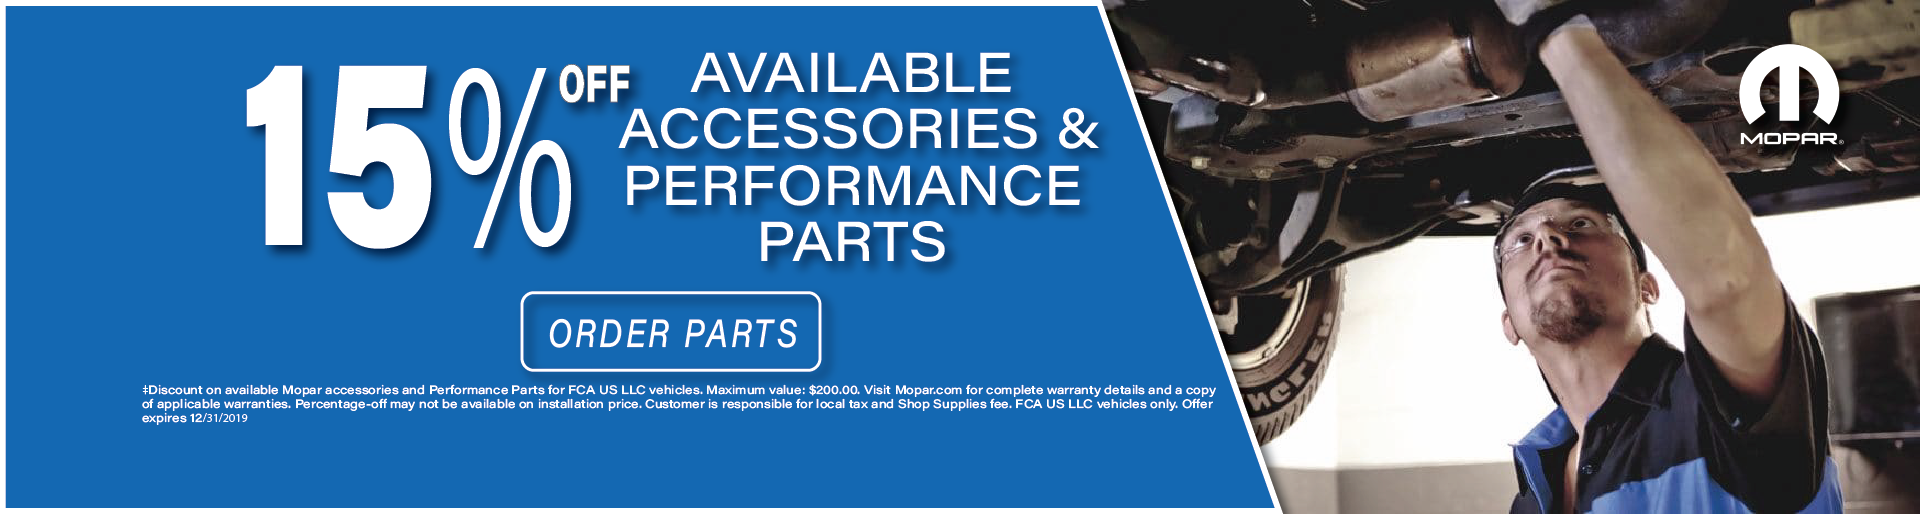 Mopar Accessories and Parts